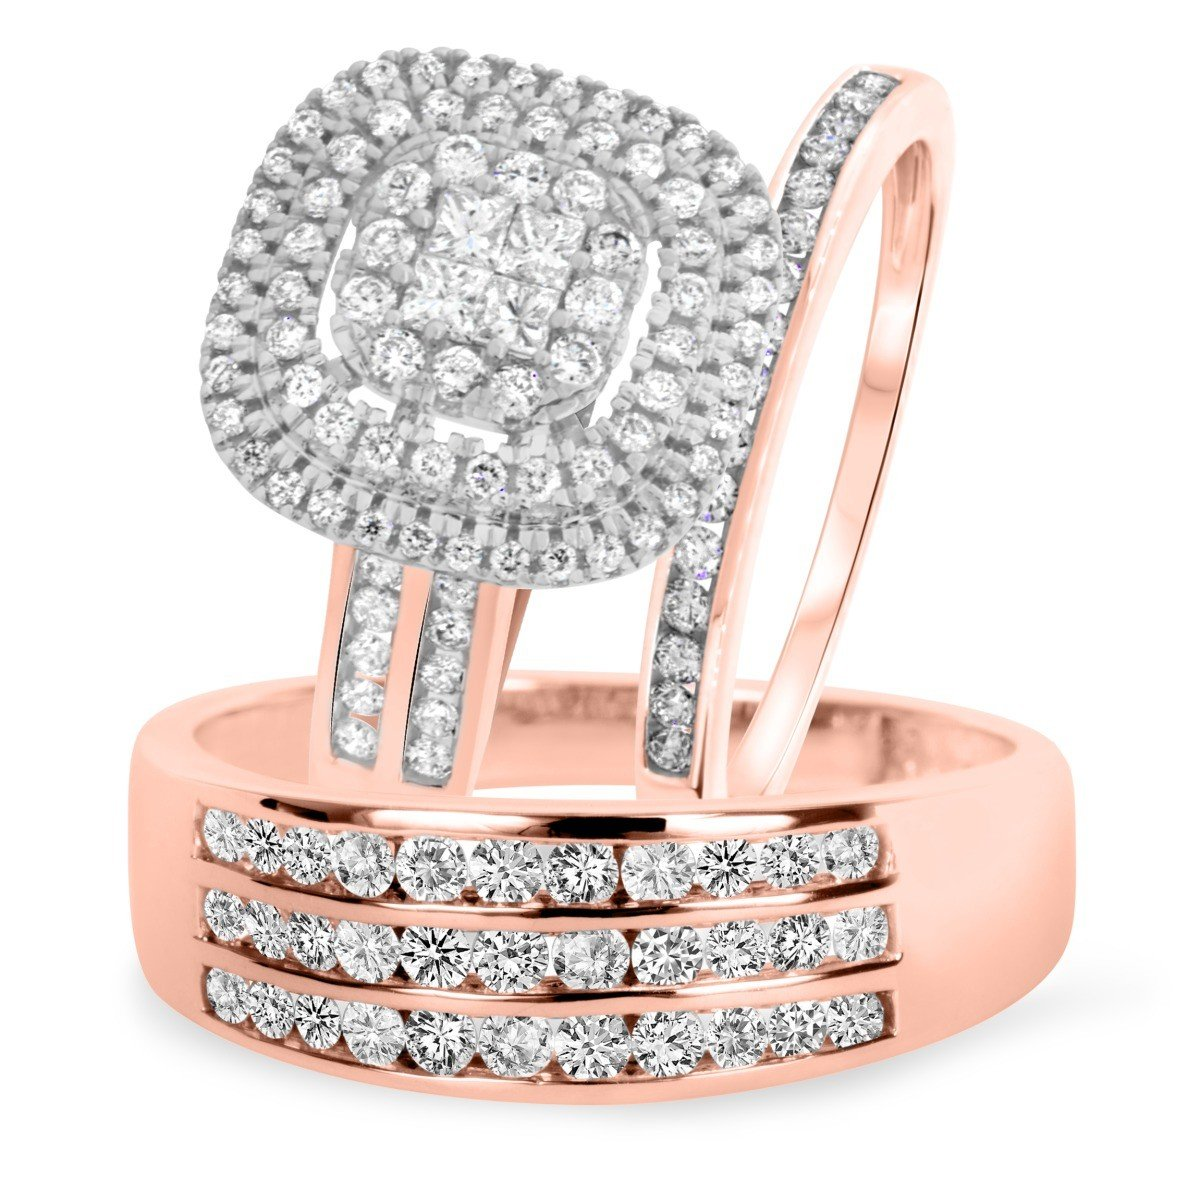 Smjewels 1 2/3 Ct Sim Diamond Men's & Women's Engagement Ring Trio Bridal Set 14K Rose Gold Fn by Smjewels (Image #1)